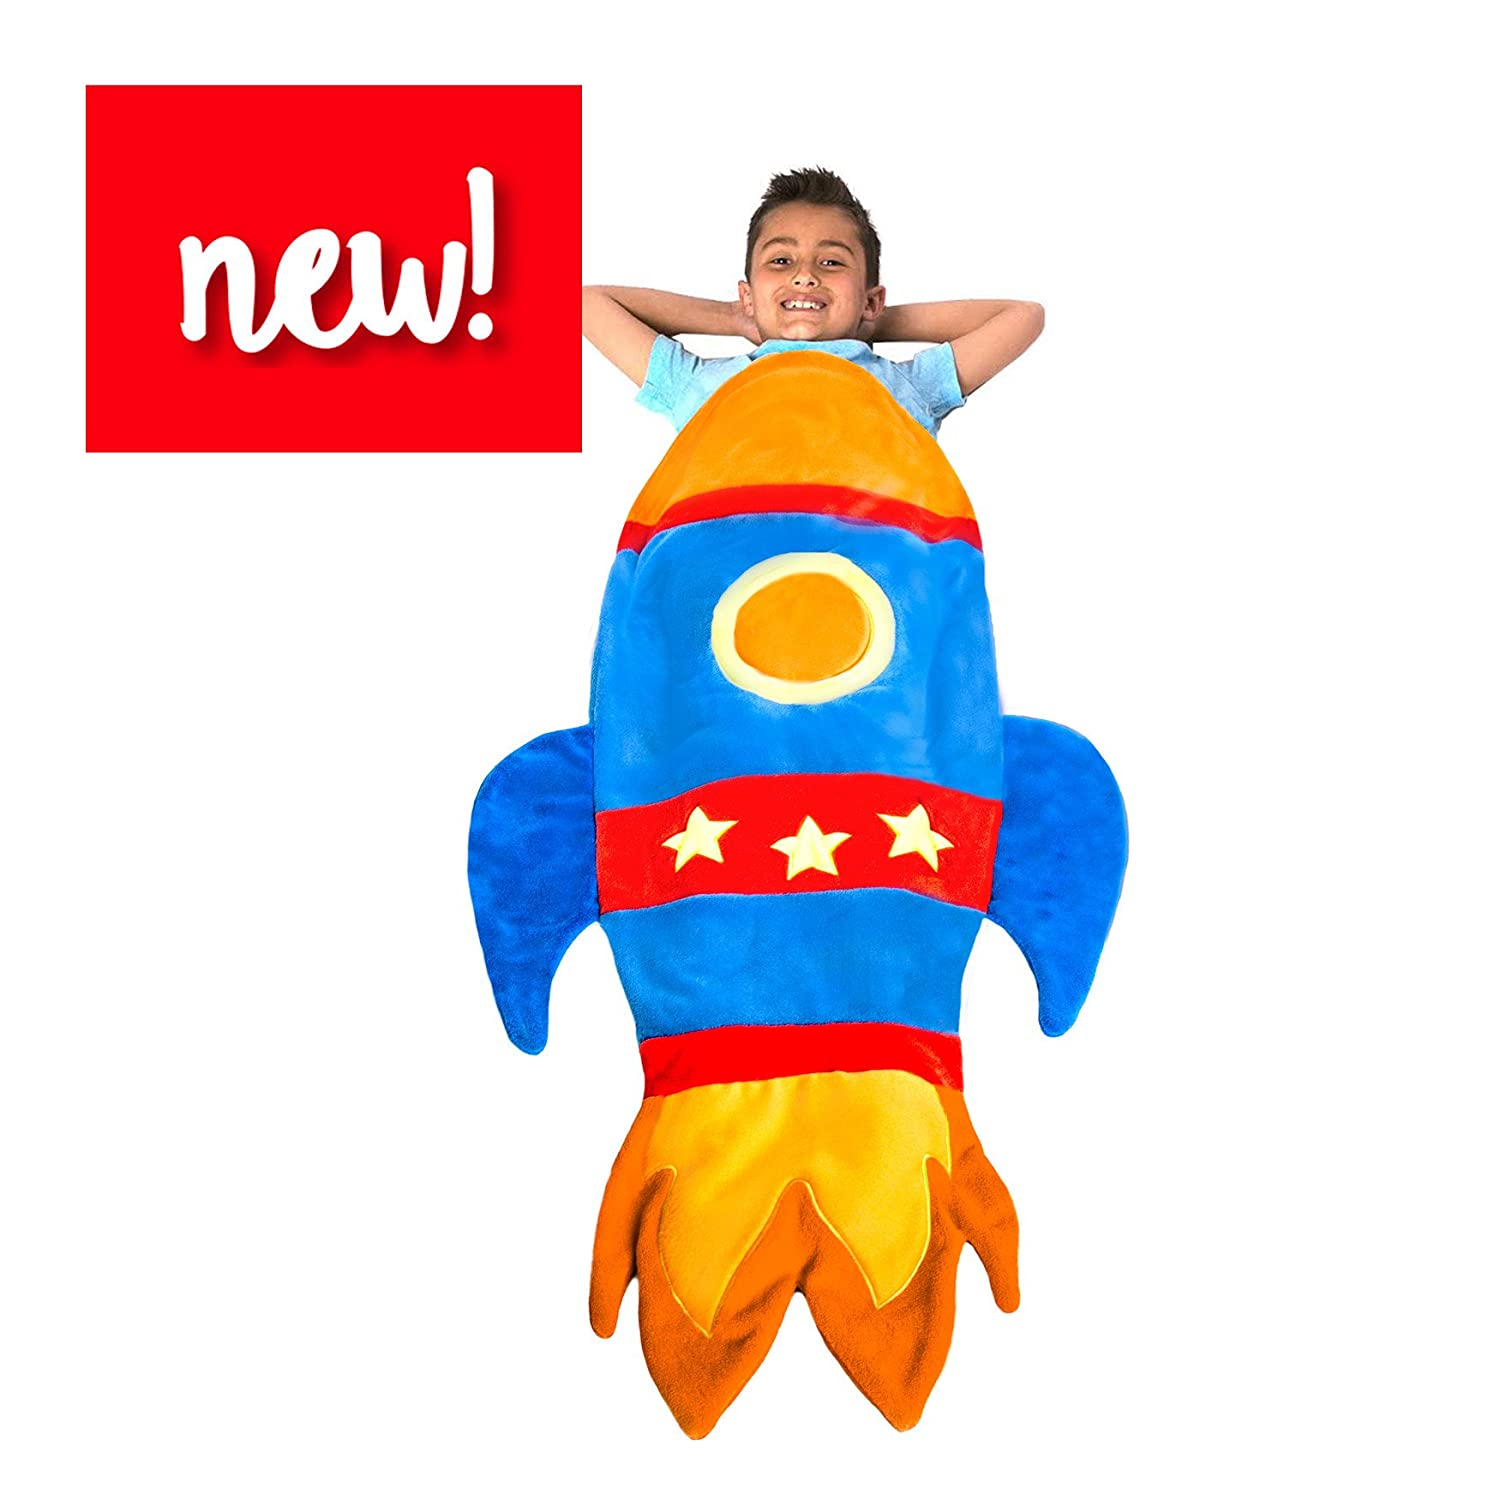 Rocket Blanket Budding Astronauts - Super Fun Design Lets Kids Climb Inside - Premium Quality Rocket Bedding in Blue - Favorite Birthday Gift Kids